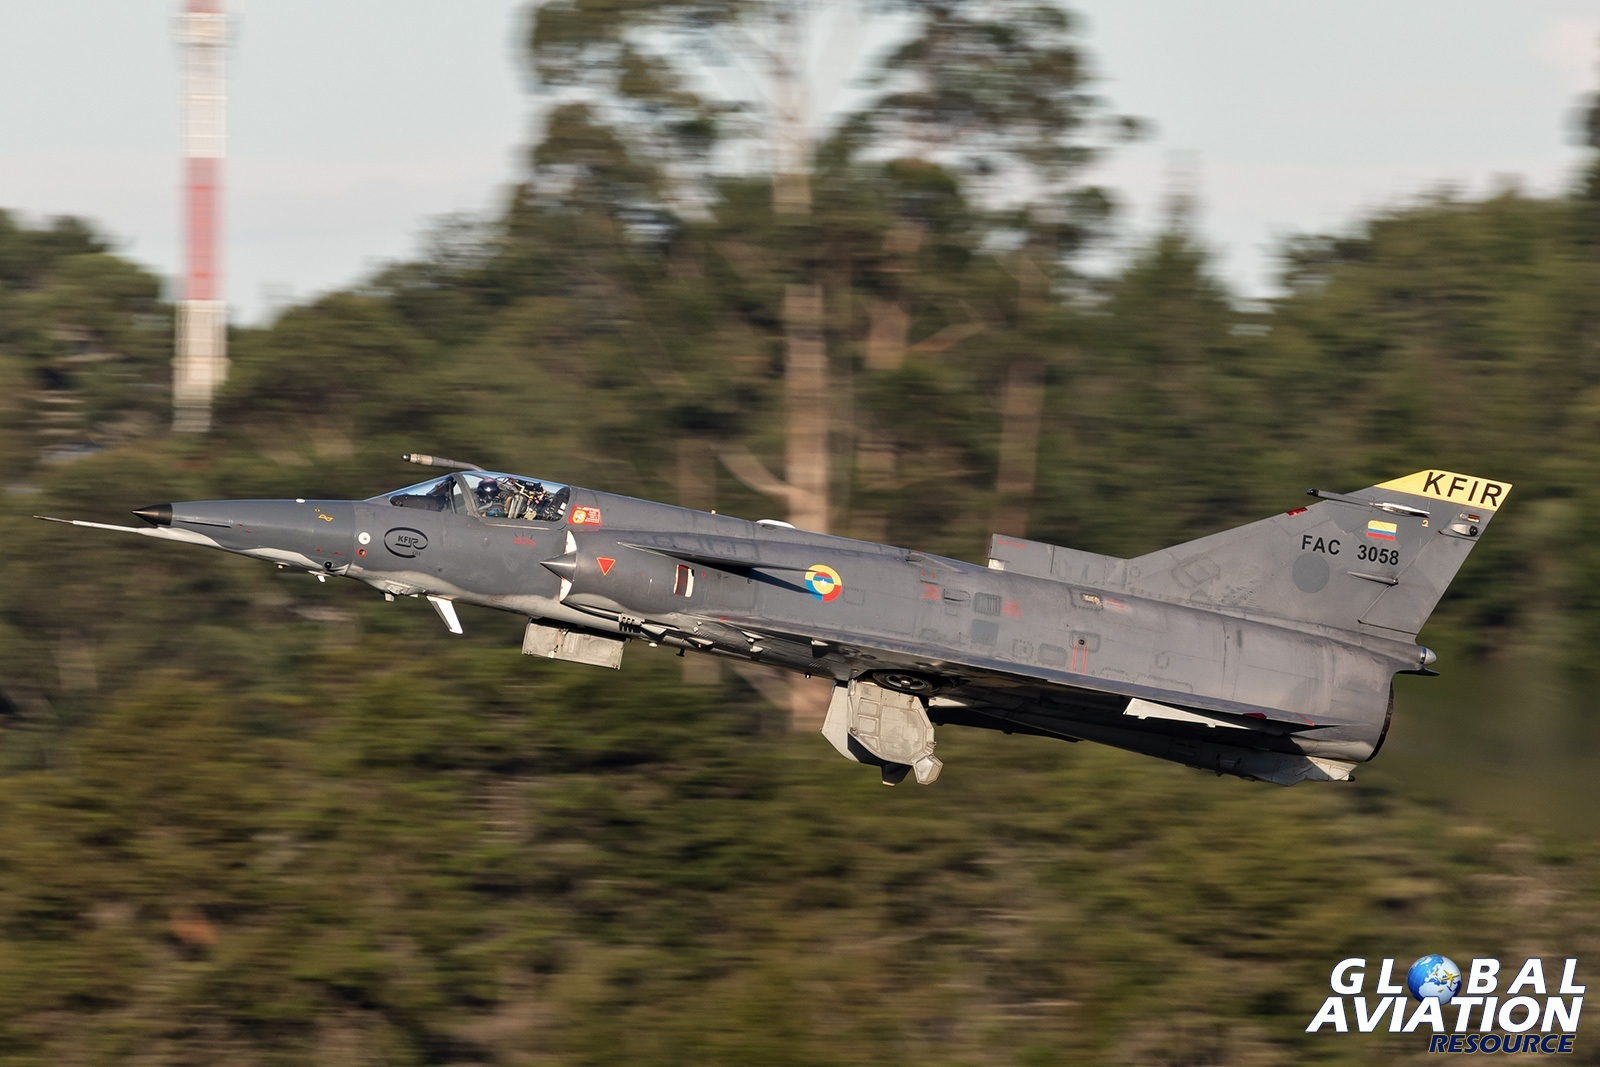 Colombian Air Force Kfir COA - © Paul Filmer, Global Aviation Resource